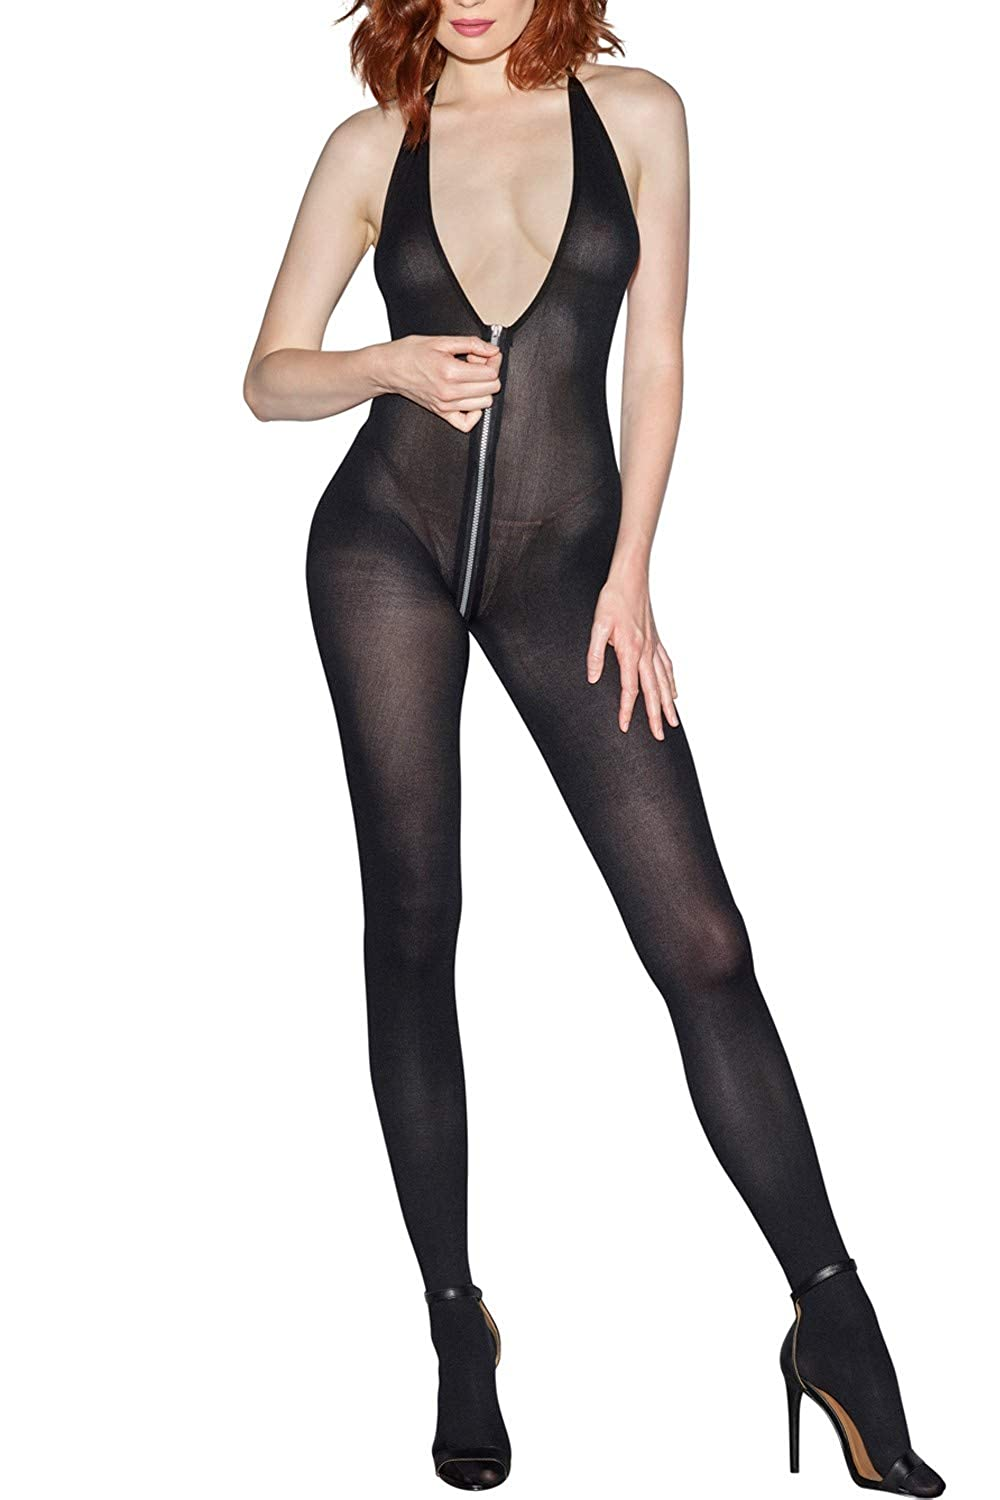 495d41263f Amazon.com  Dreamgirl Women s Semi-Opaque Bodystocking with Front To Back  Zipper